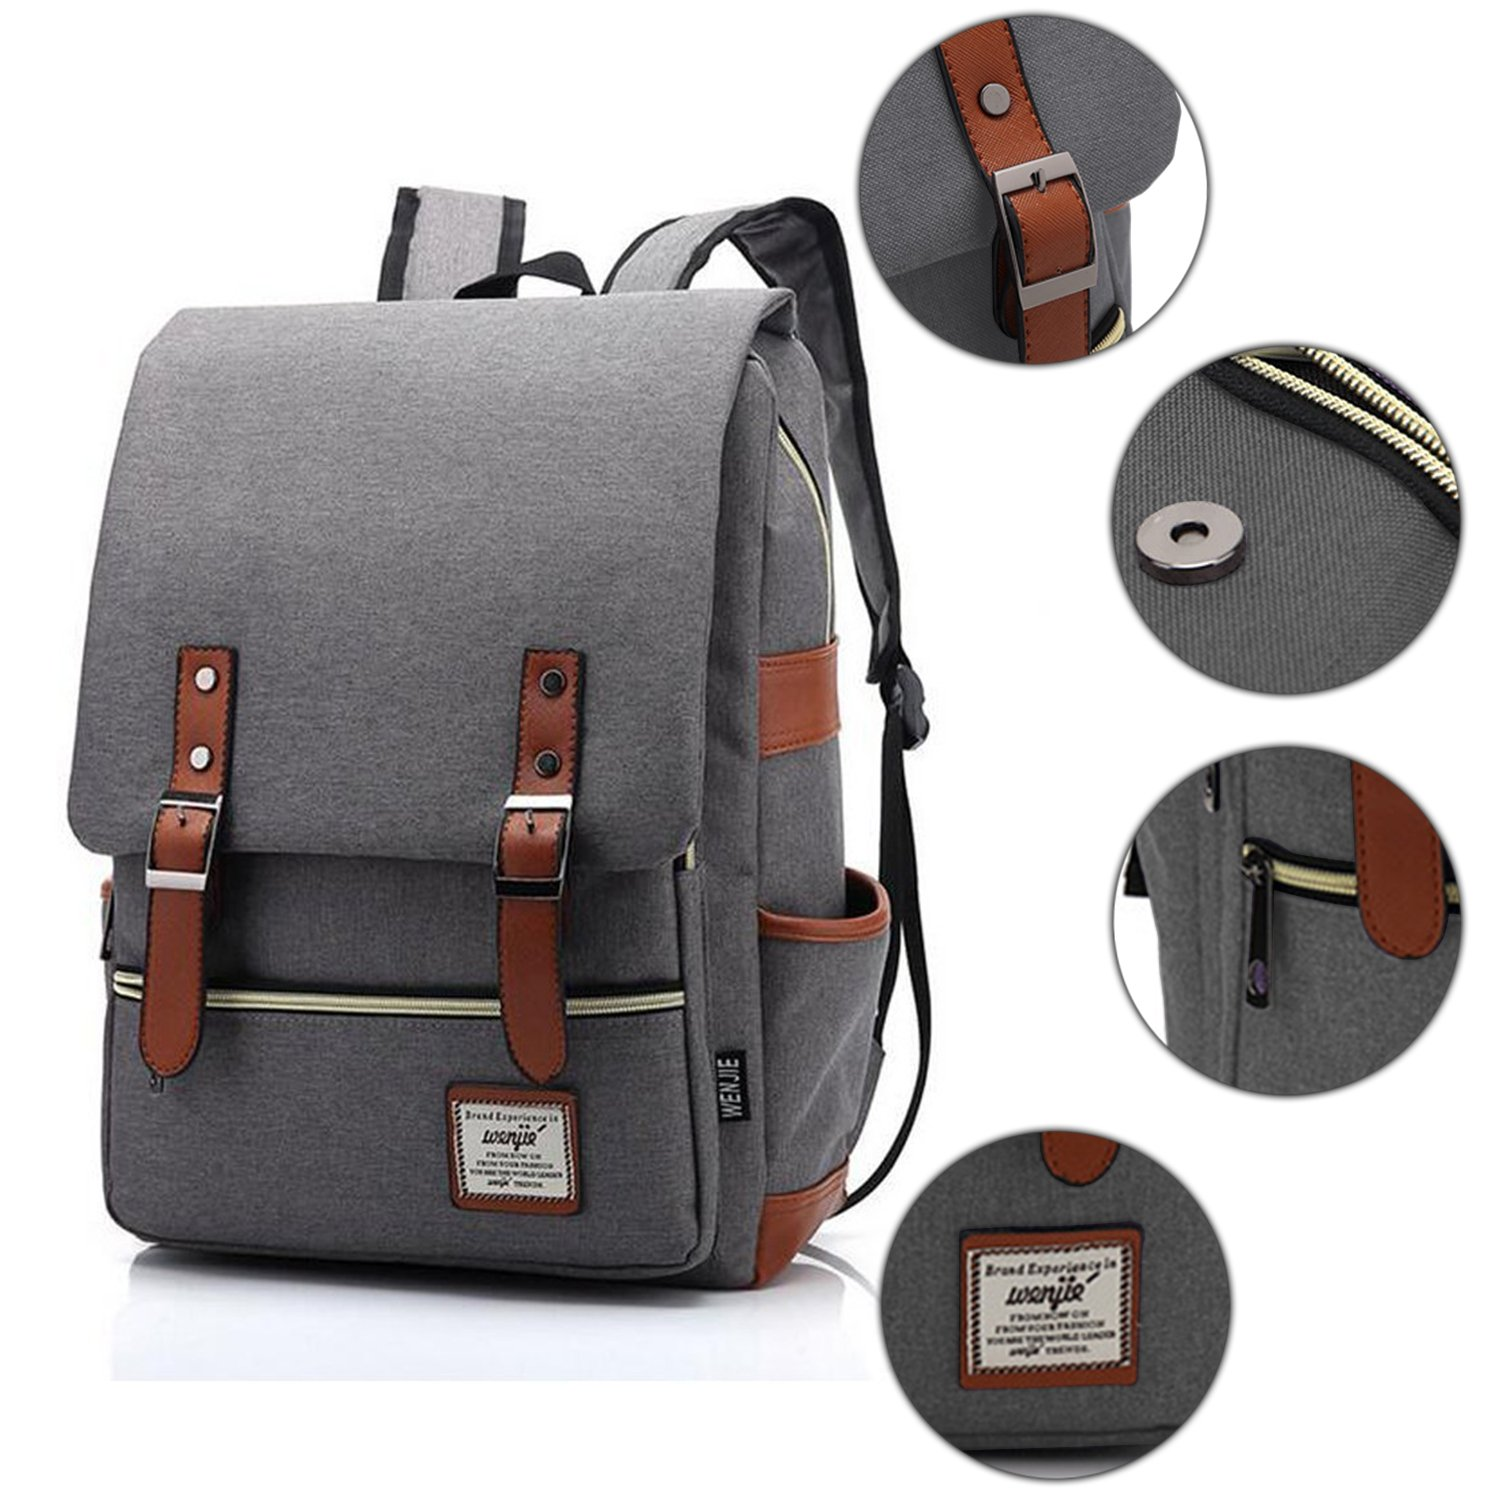 Vintage Canvas Backpack - Lightweight Canvas Laptop Outdoor Backpack, Travel Backpack with Laptop Sleeve, College School Bag with Side Pockets Canvas Rucksack for School Working Hiking (Retro Grey) by GoTravel2 (Image #4)